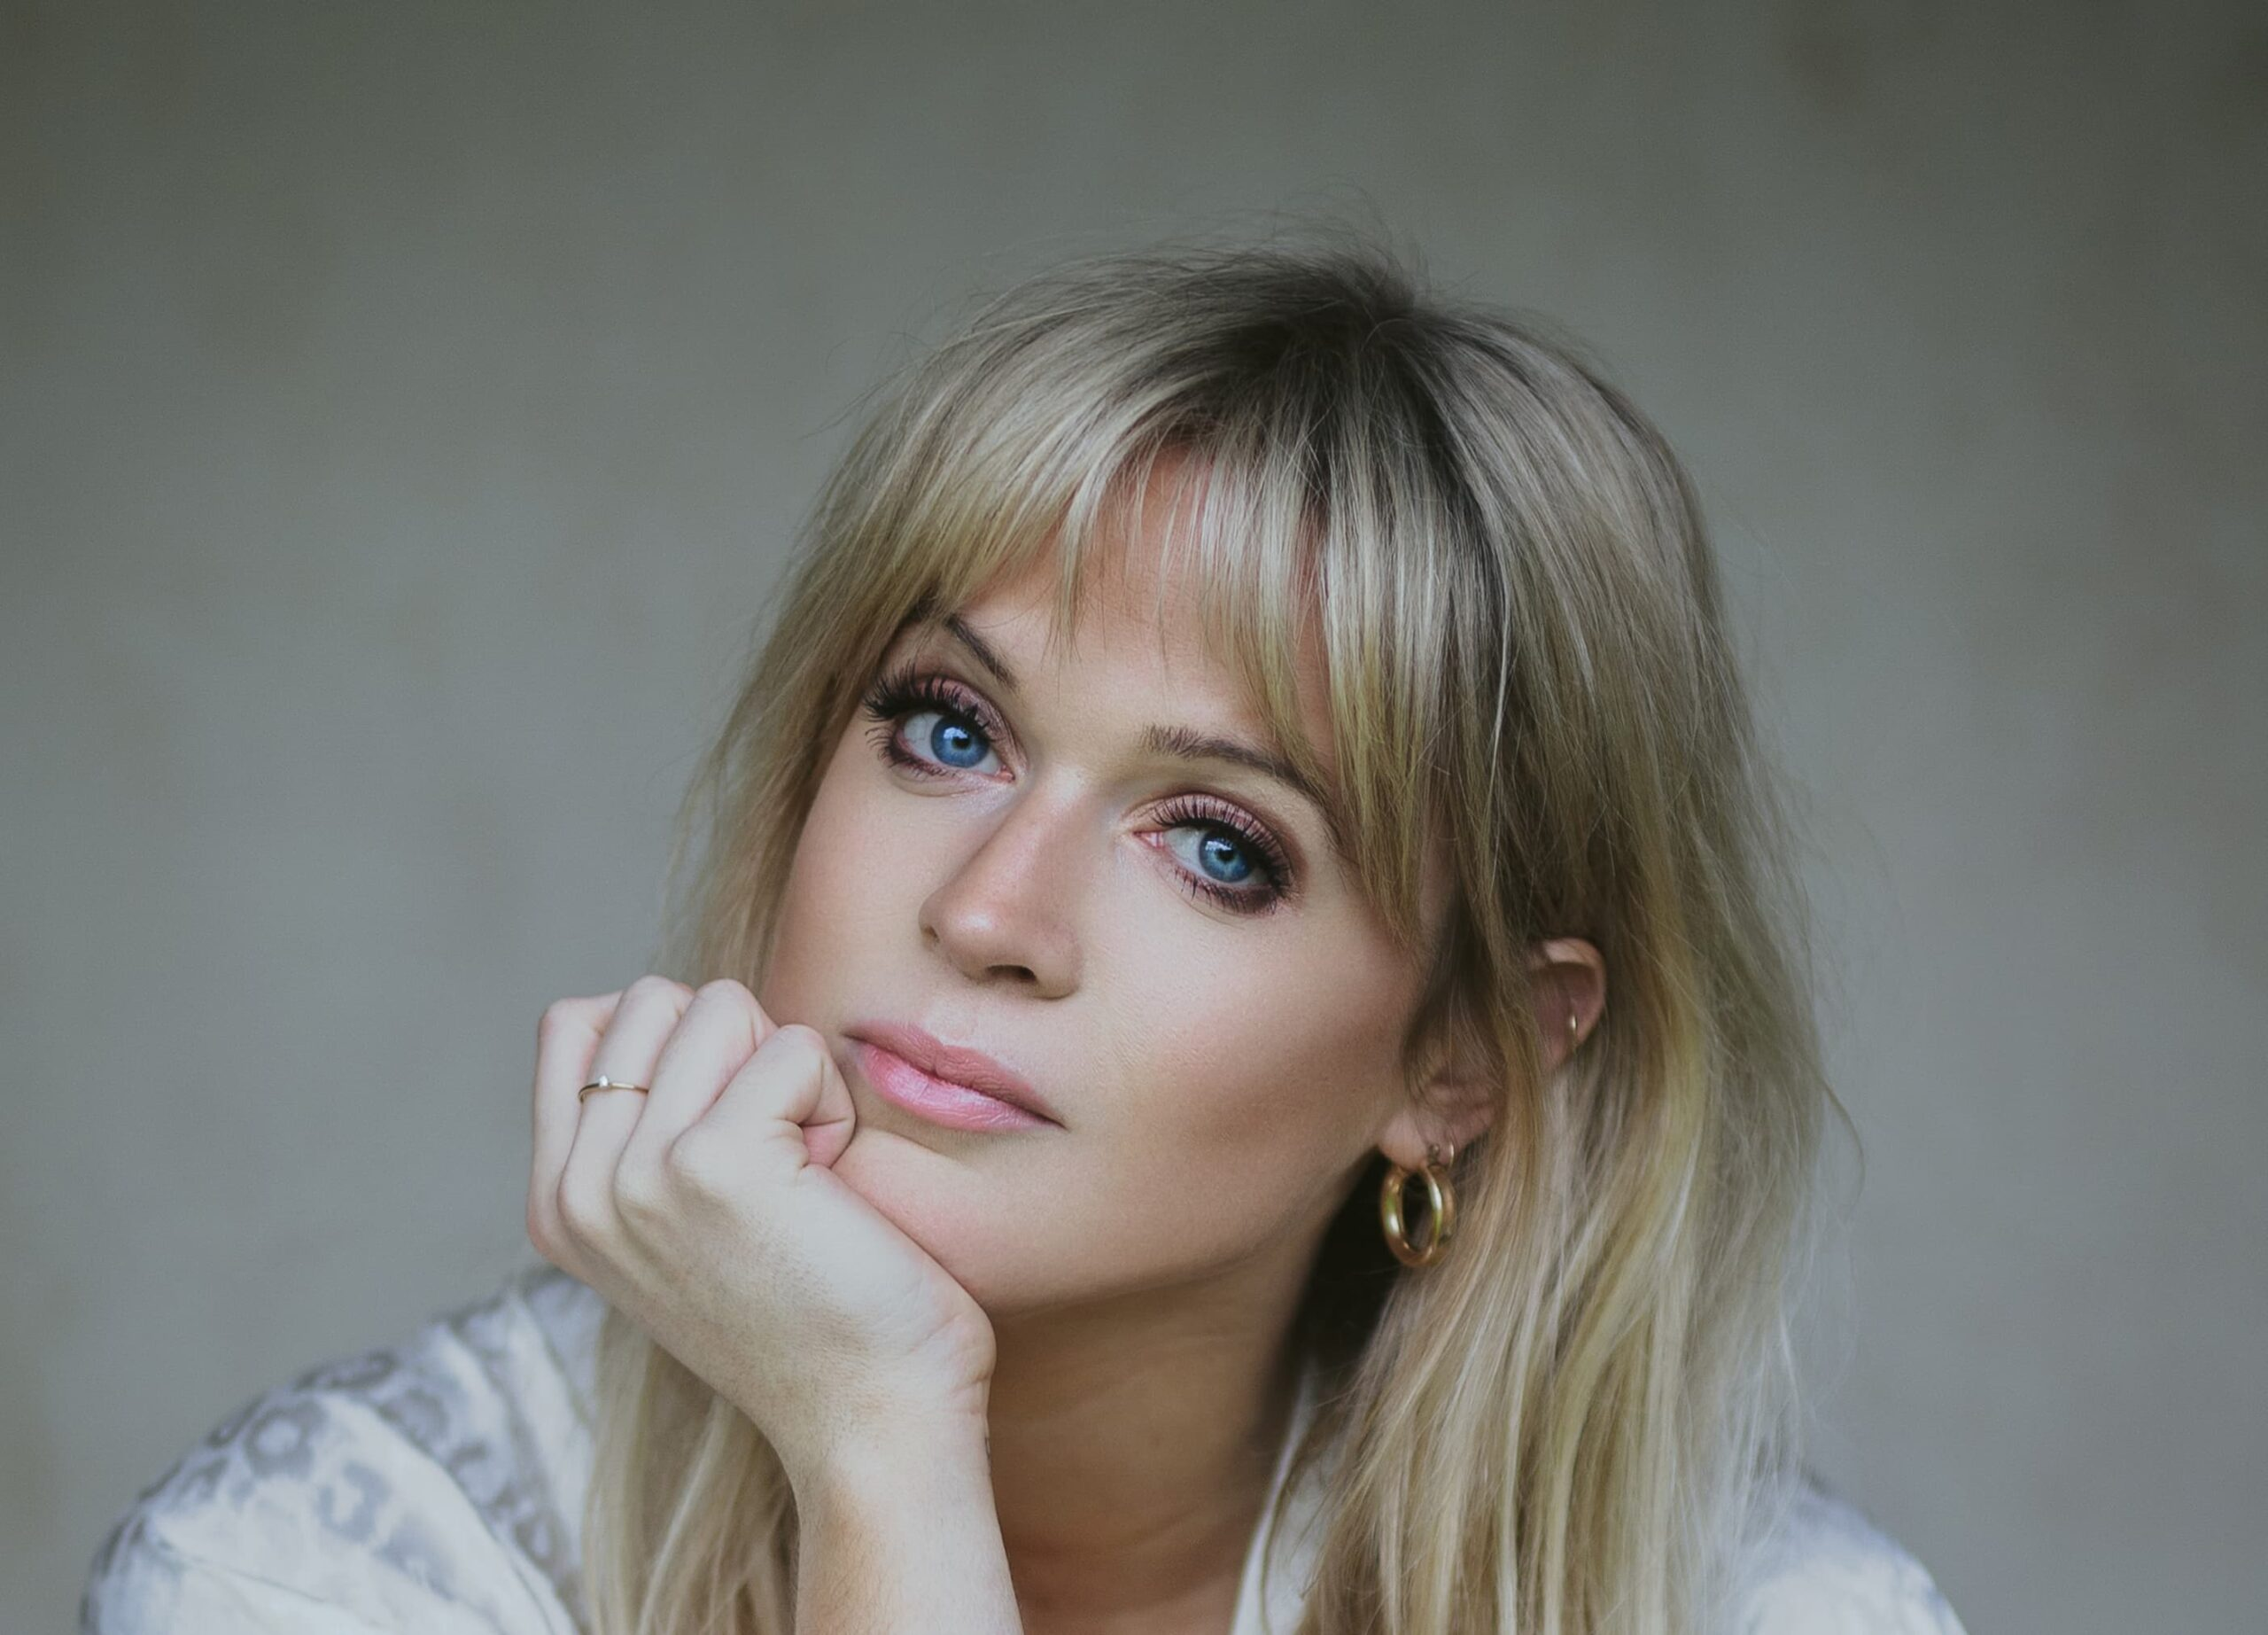 Journalist Dolly Alderton interview